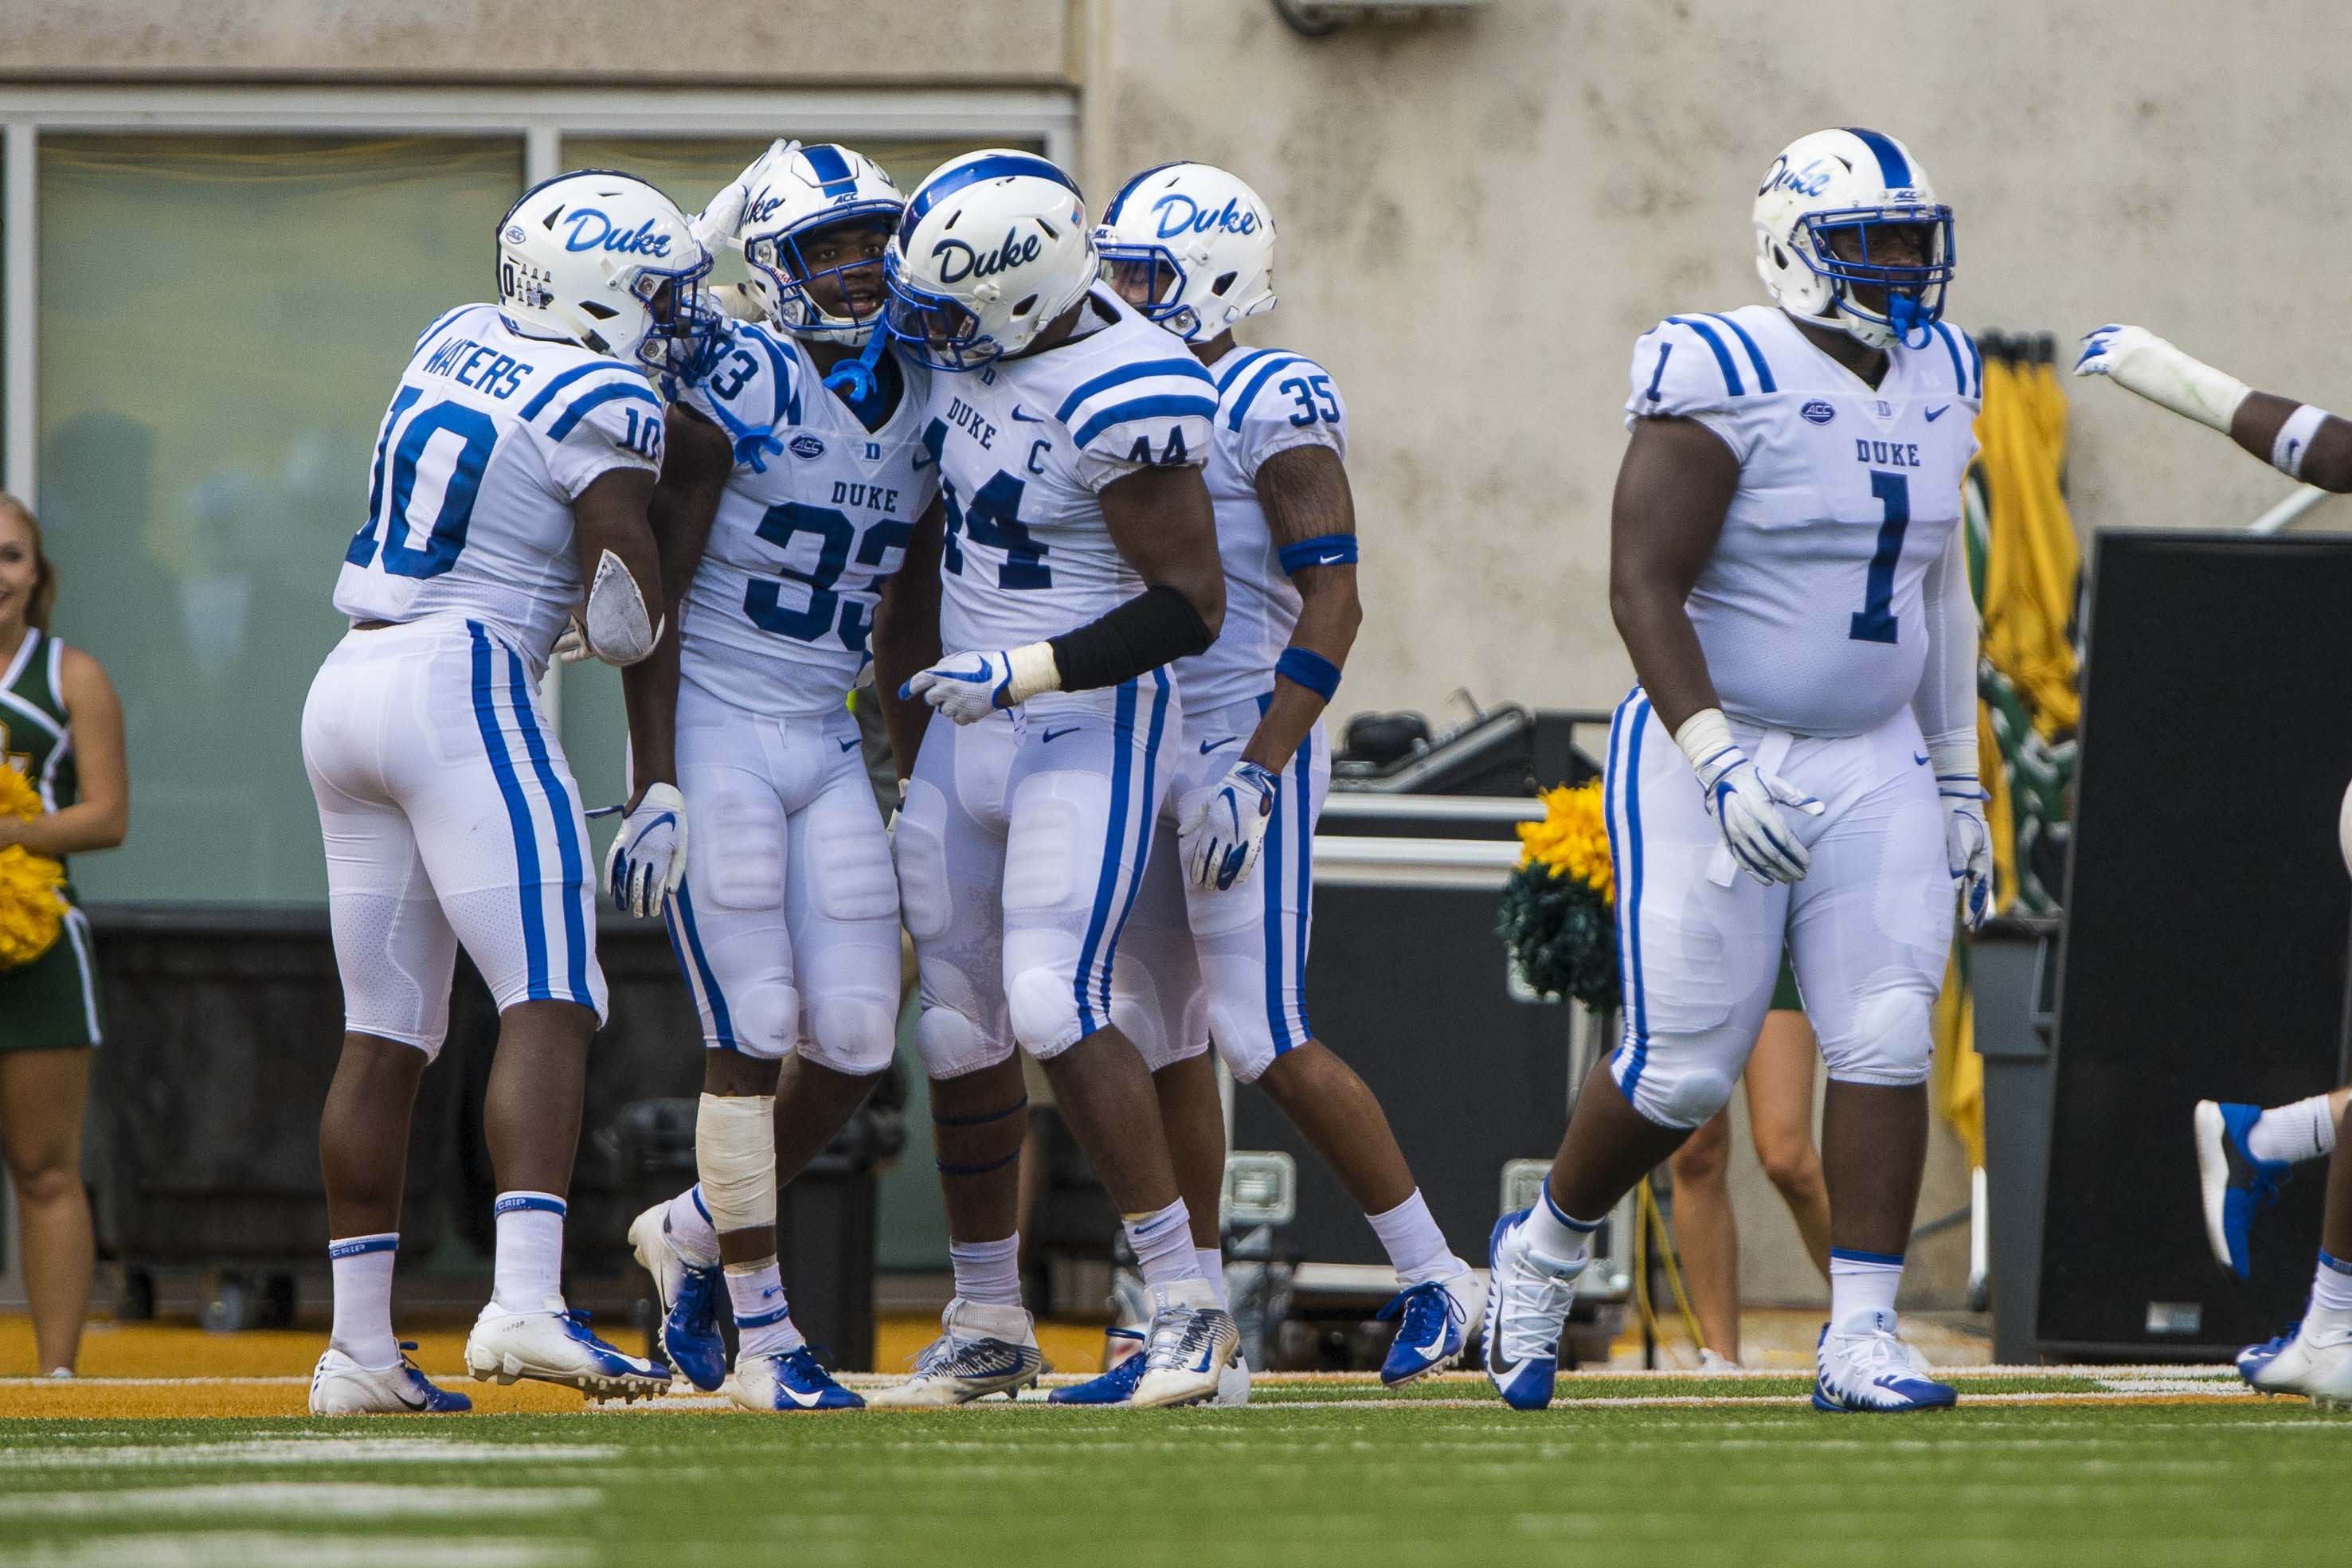 Duke's steady and full of upside in football. We don't talk enough about how wild that is